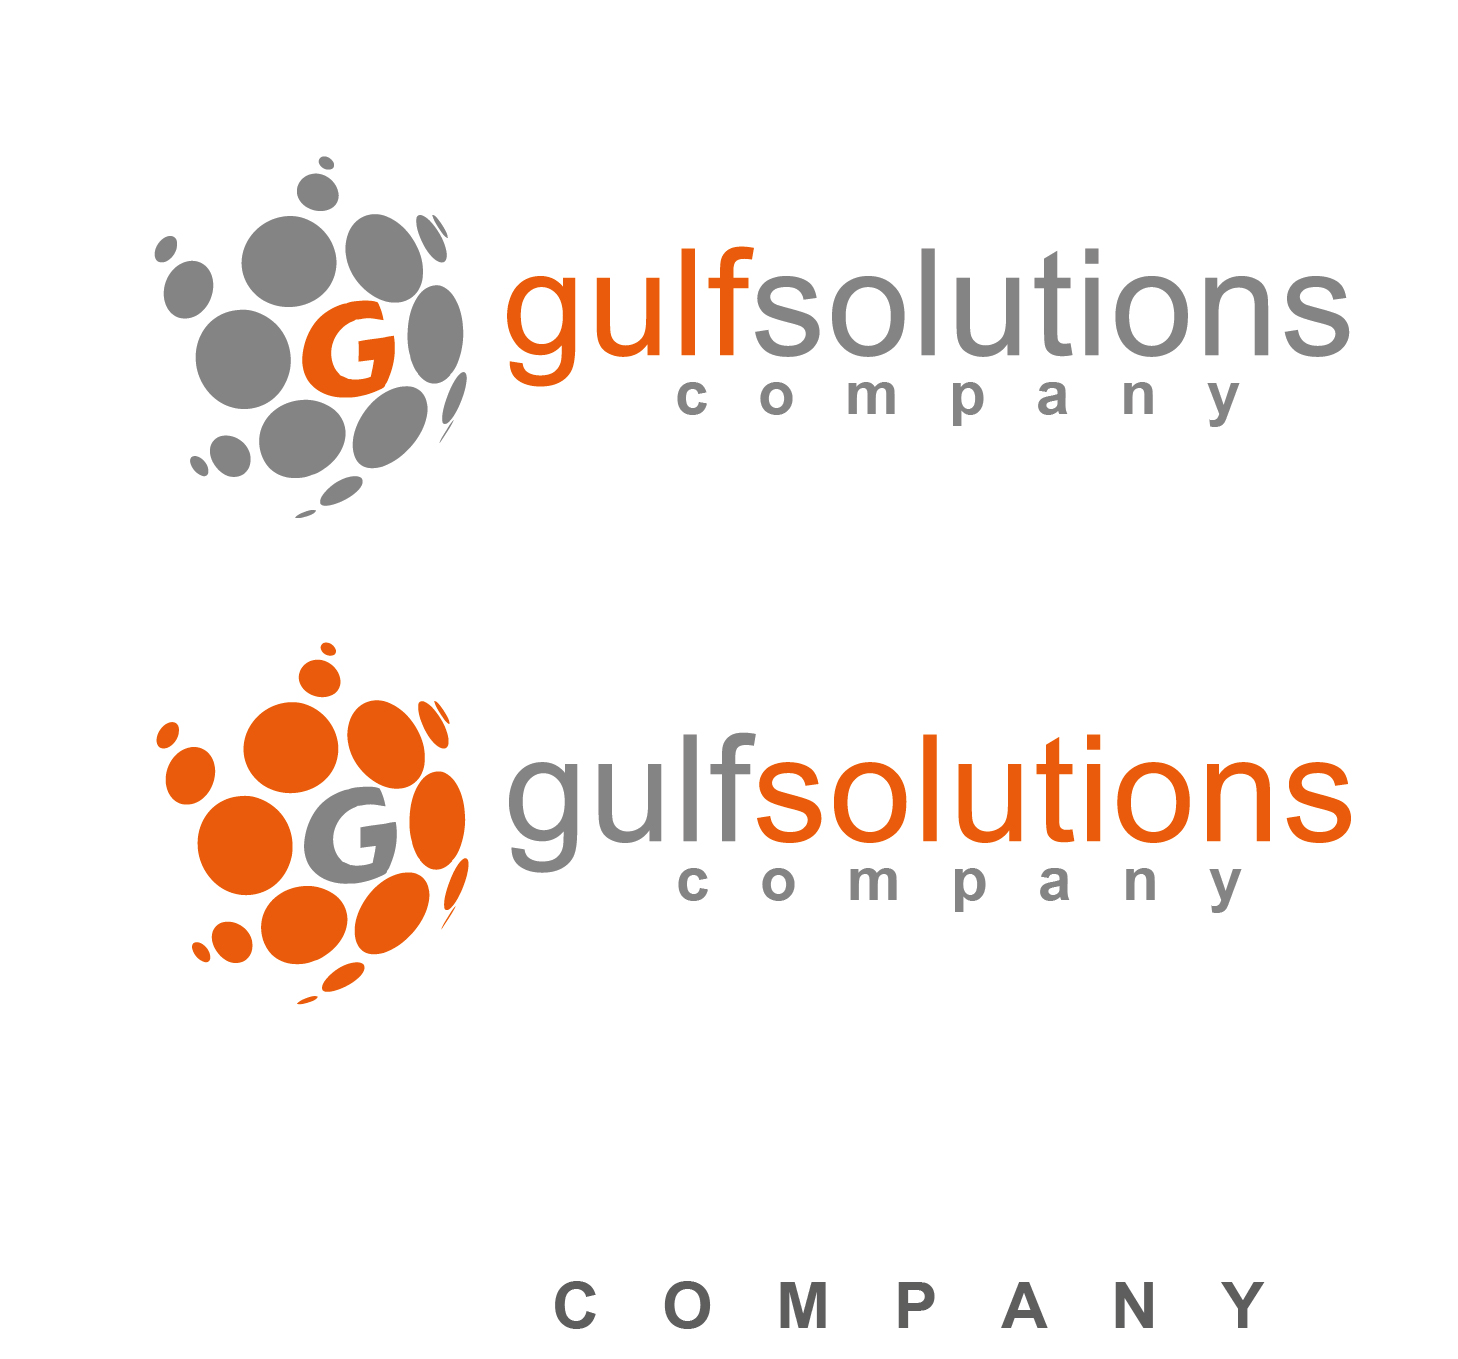 Logo Design by VENTSISLAV KOVACHEV - Entry No. 101 in the Logo Design Contest New Logo Design for Gulf solutions company.